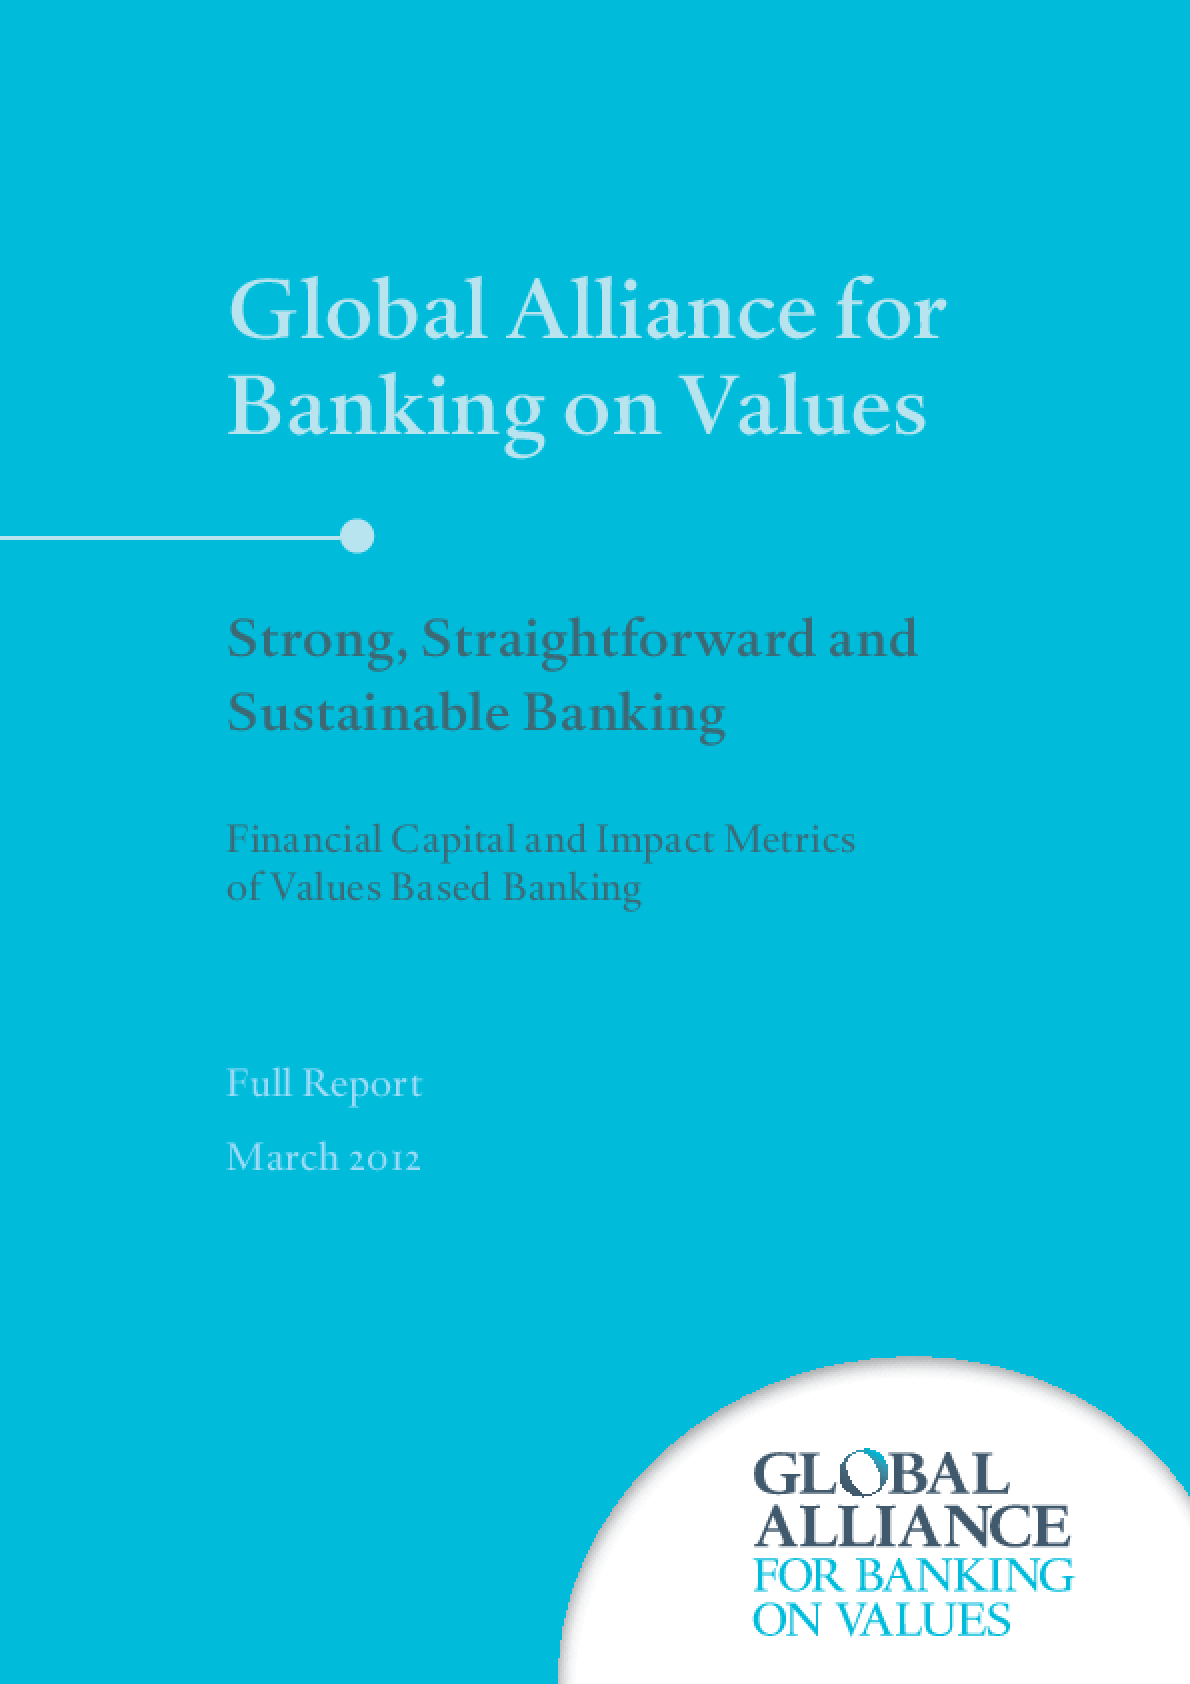 Strong, Straightforward and Sustainable Banking